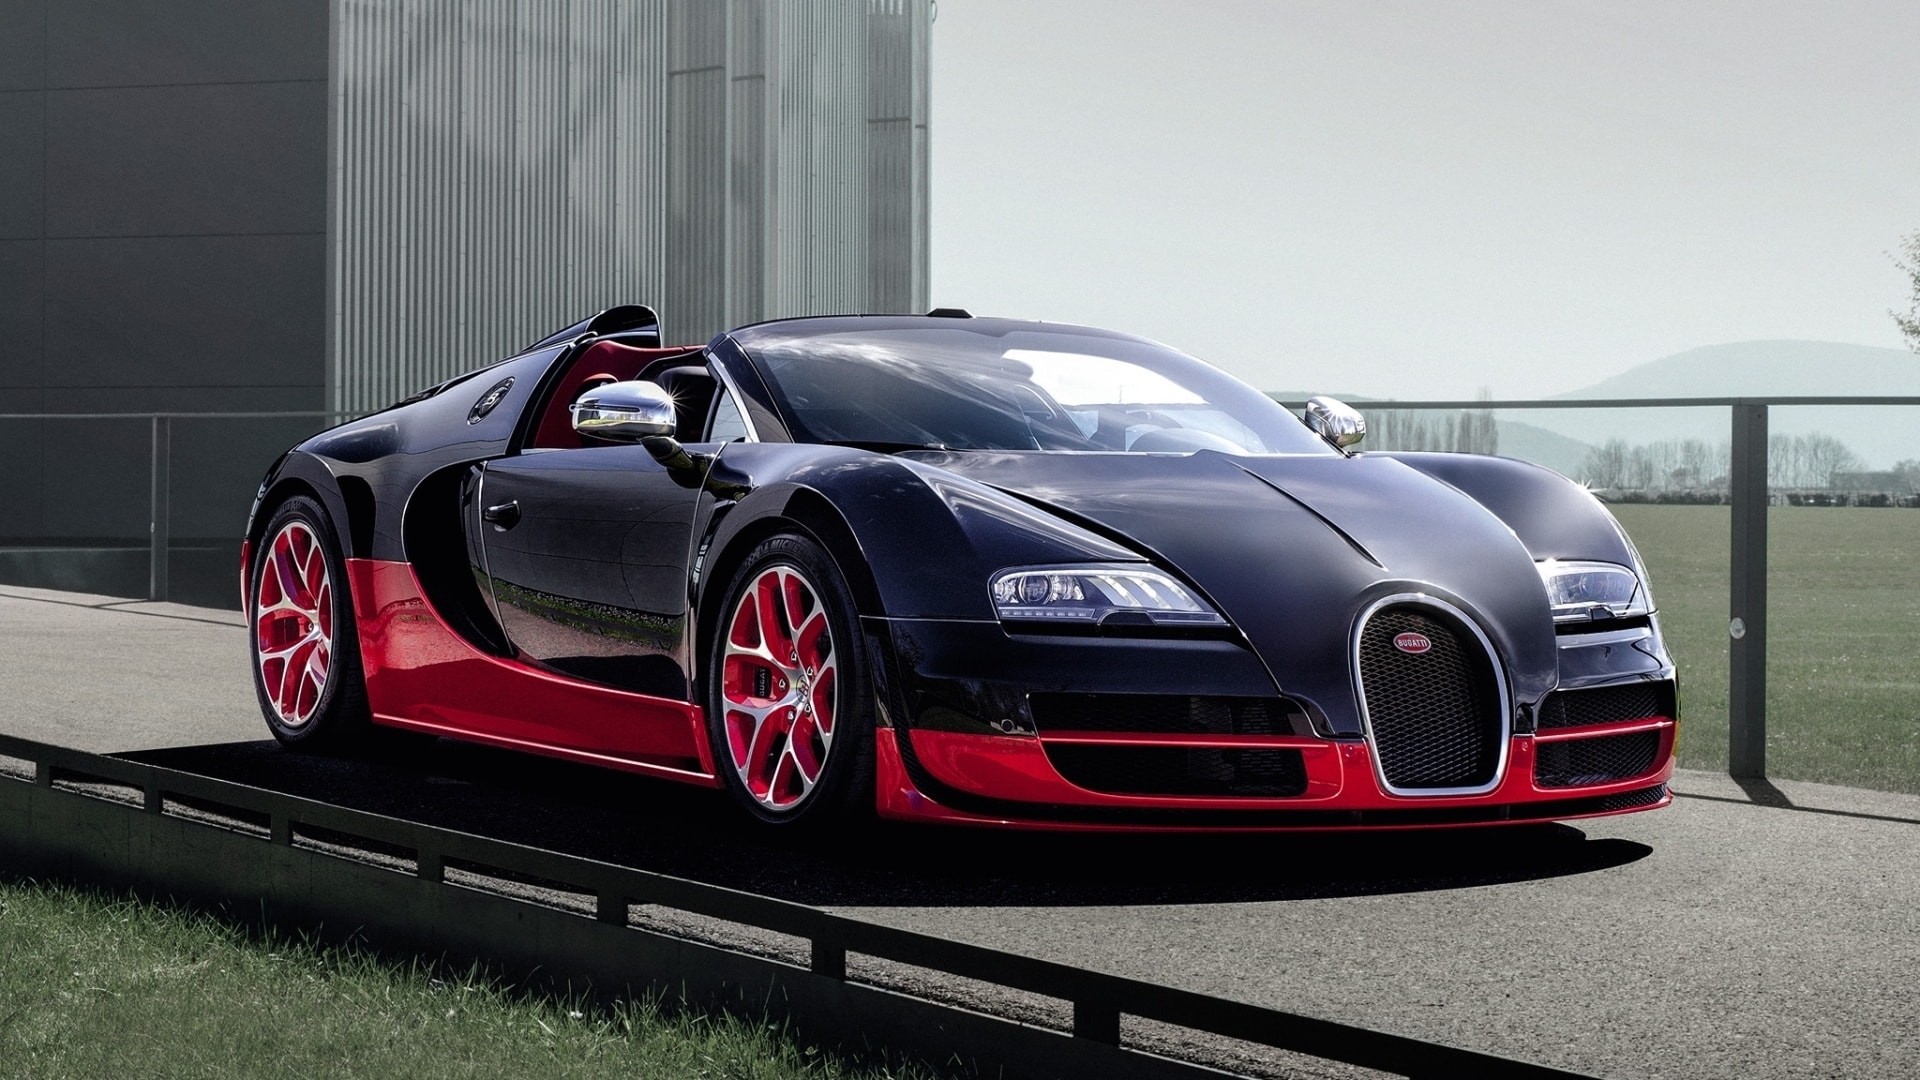 Bugatti Veyron Super Sport HQ wallpapers